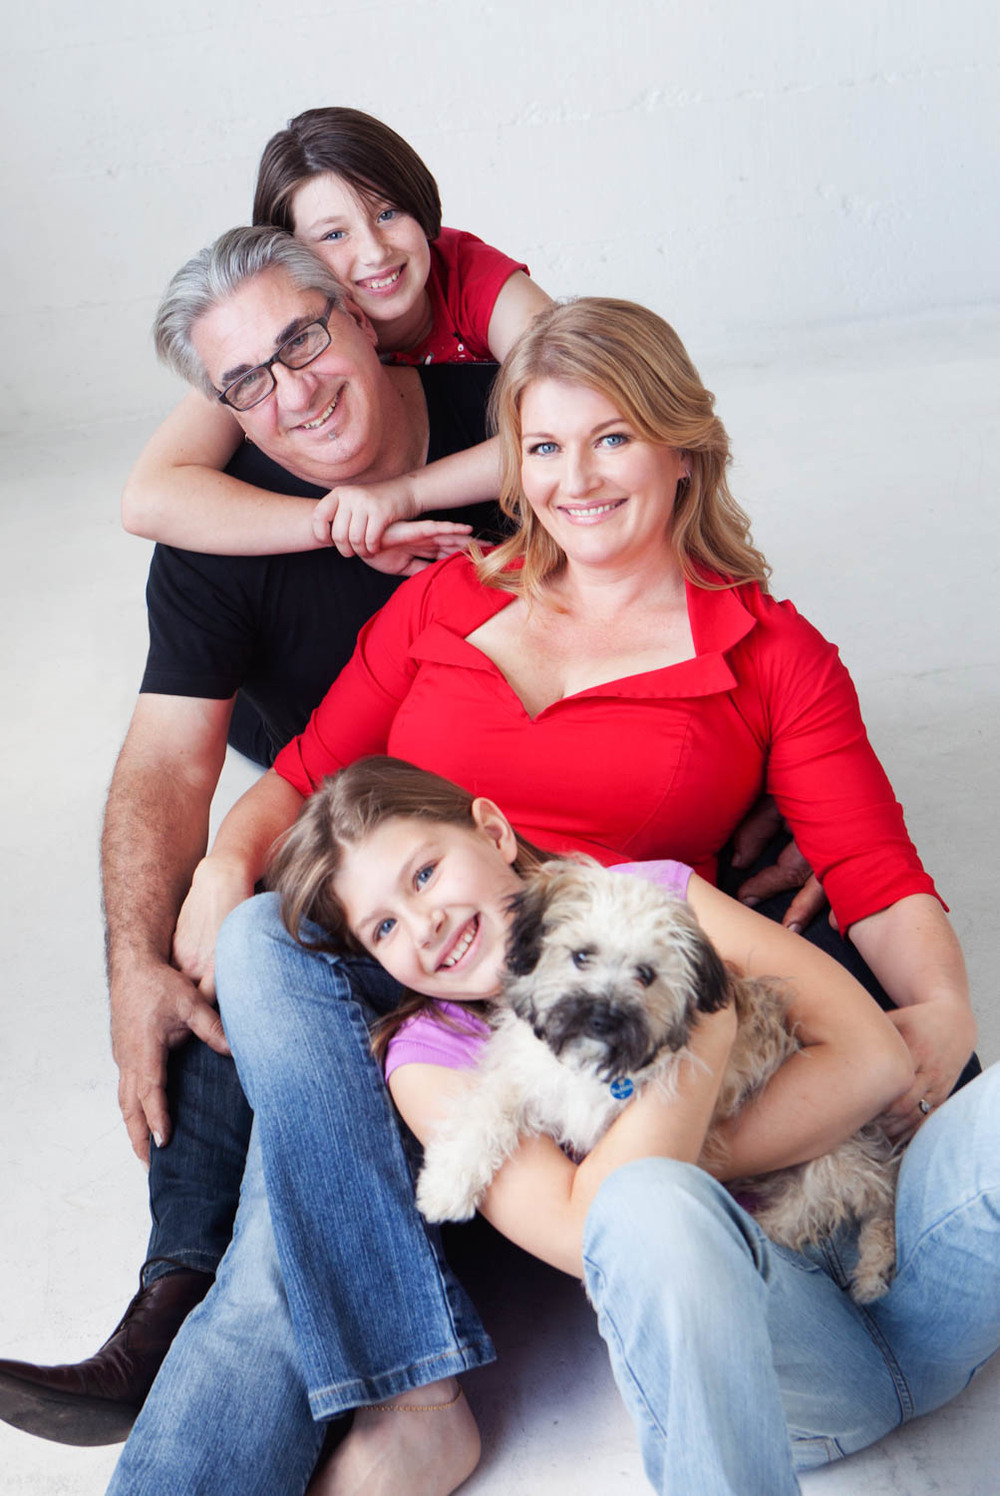 Family_Photographer_Auckland_17723_9049.jpg